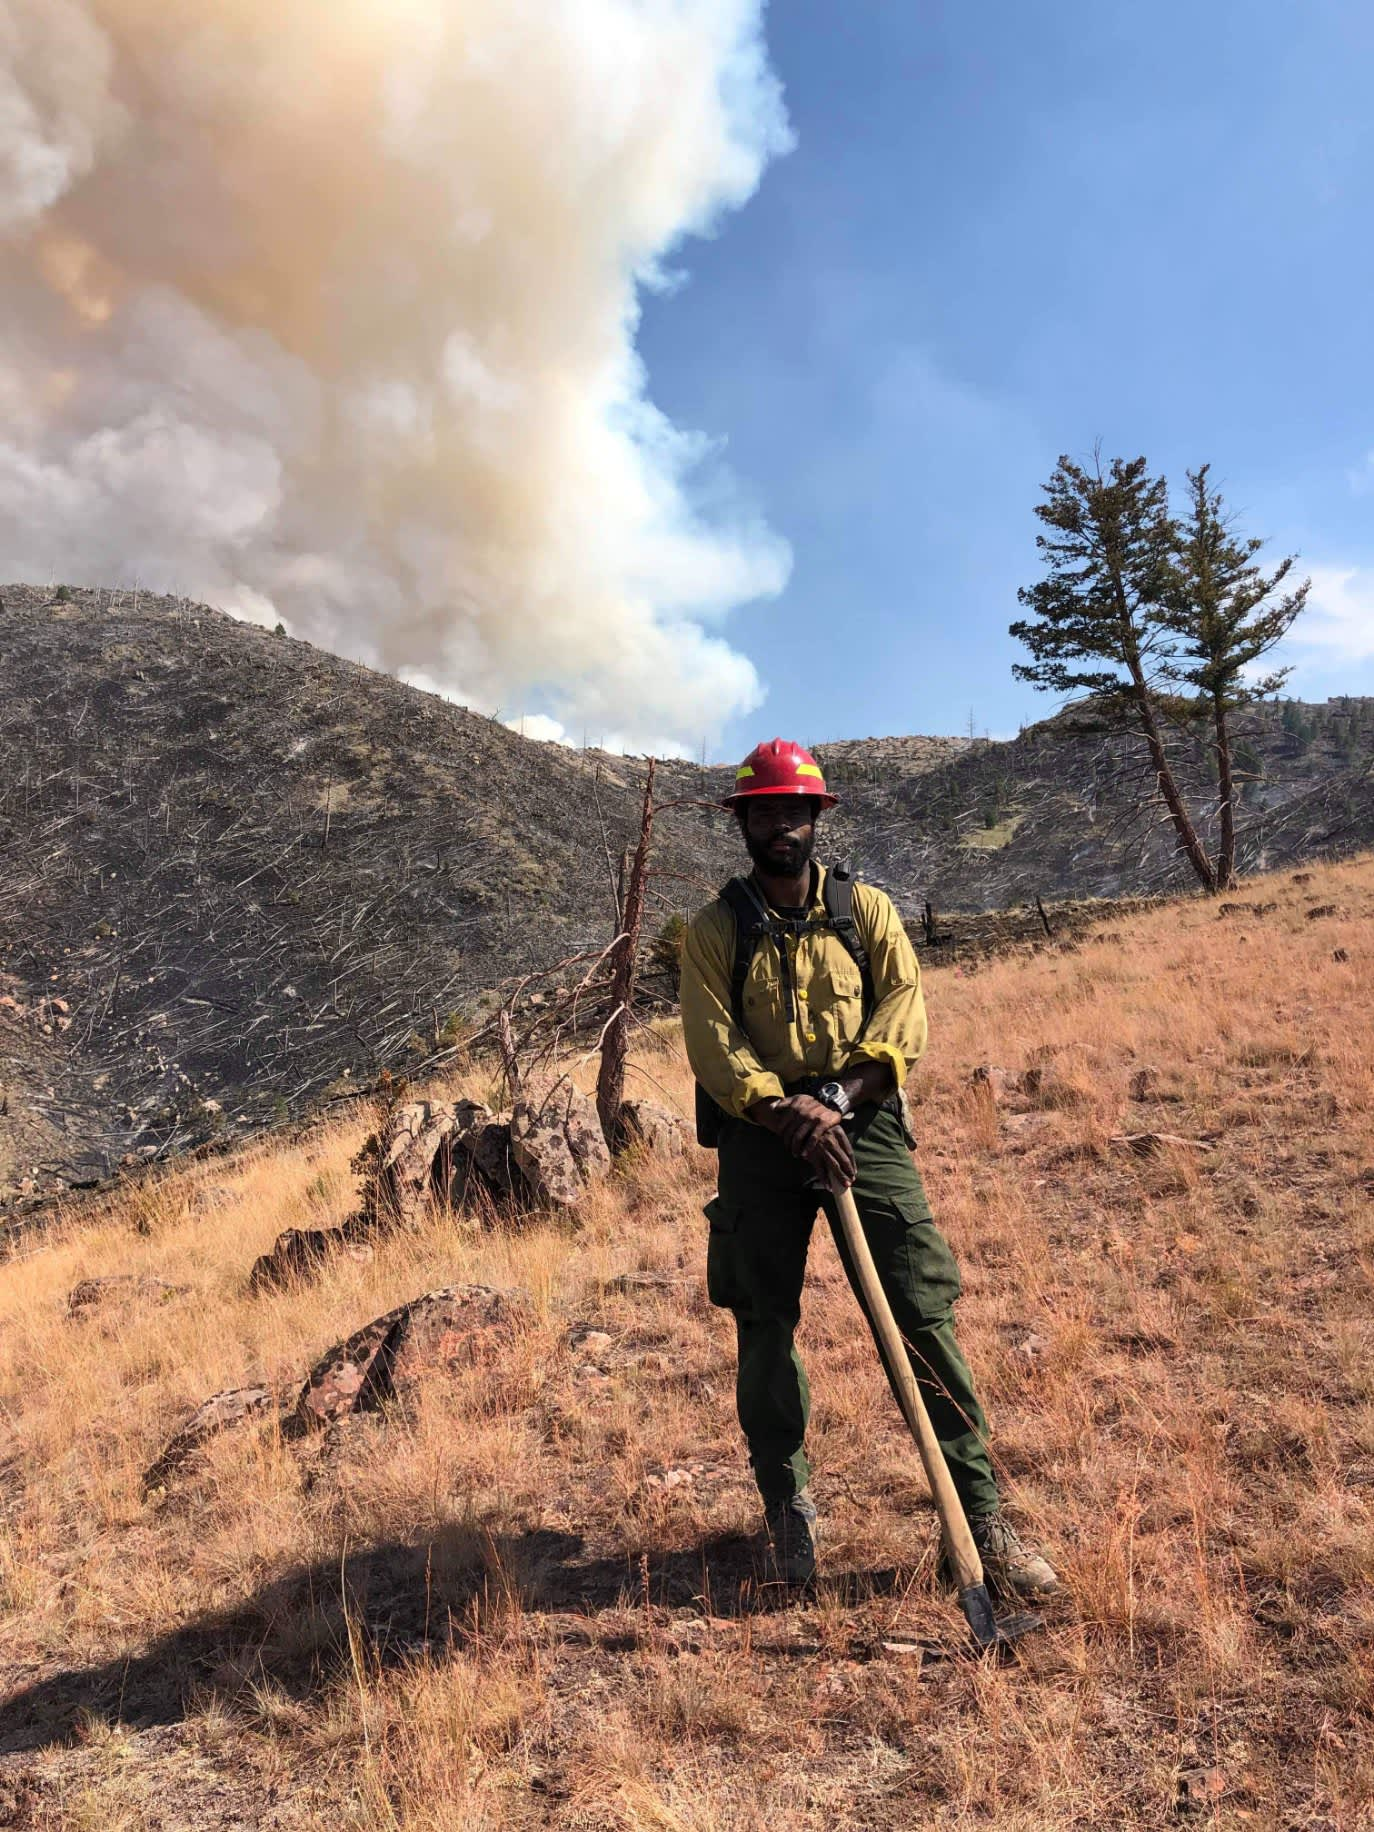 The slowest fire season in years taught this wildland firefighter to create a financial backup plan